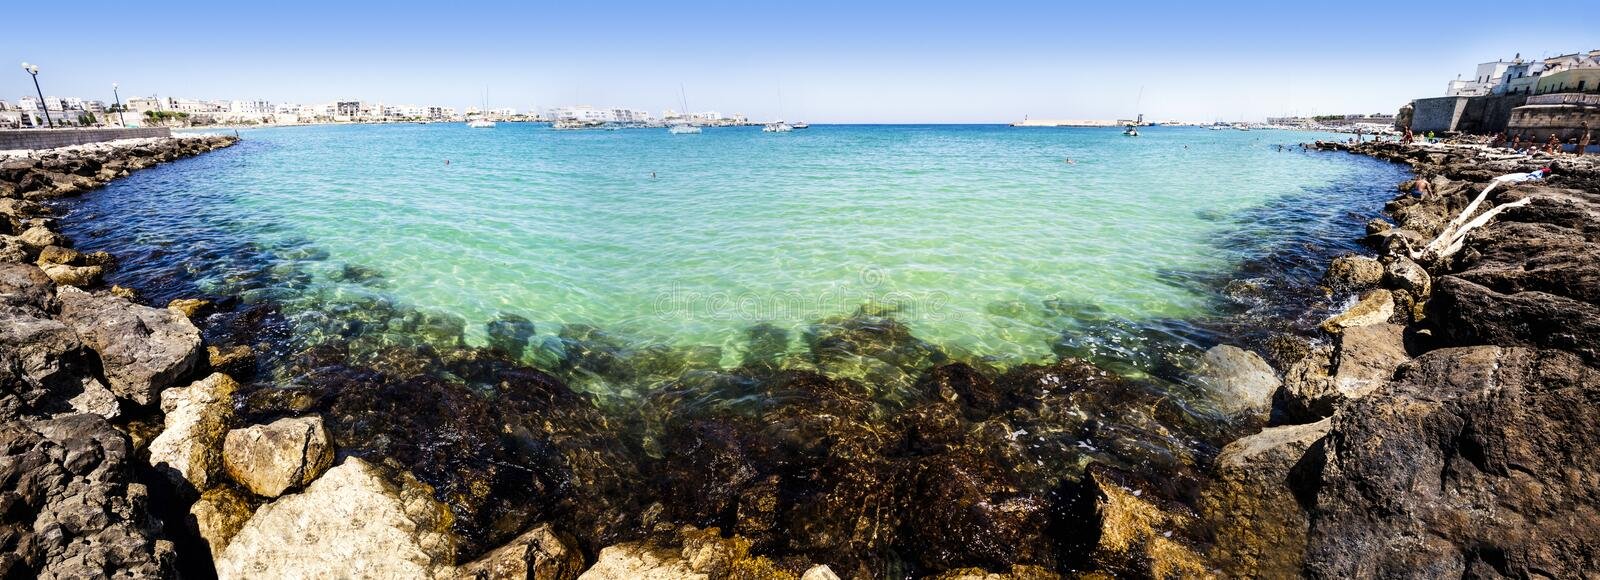 Panorama Mediterranean Sea (Ionian Sea) with rocks. Wide angle panoramic cliffs, deep blue sea and sky. City of Otranto, South Italy stock image